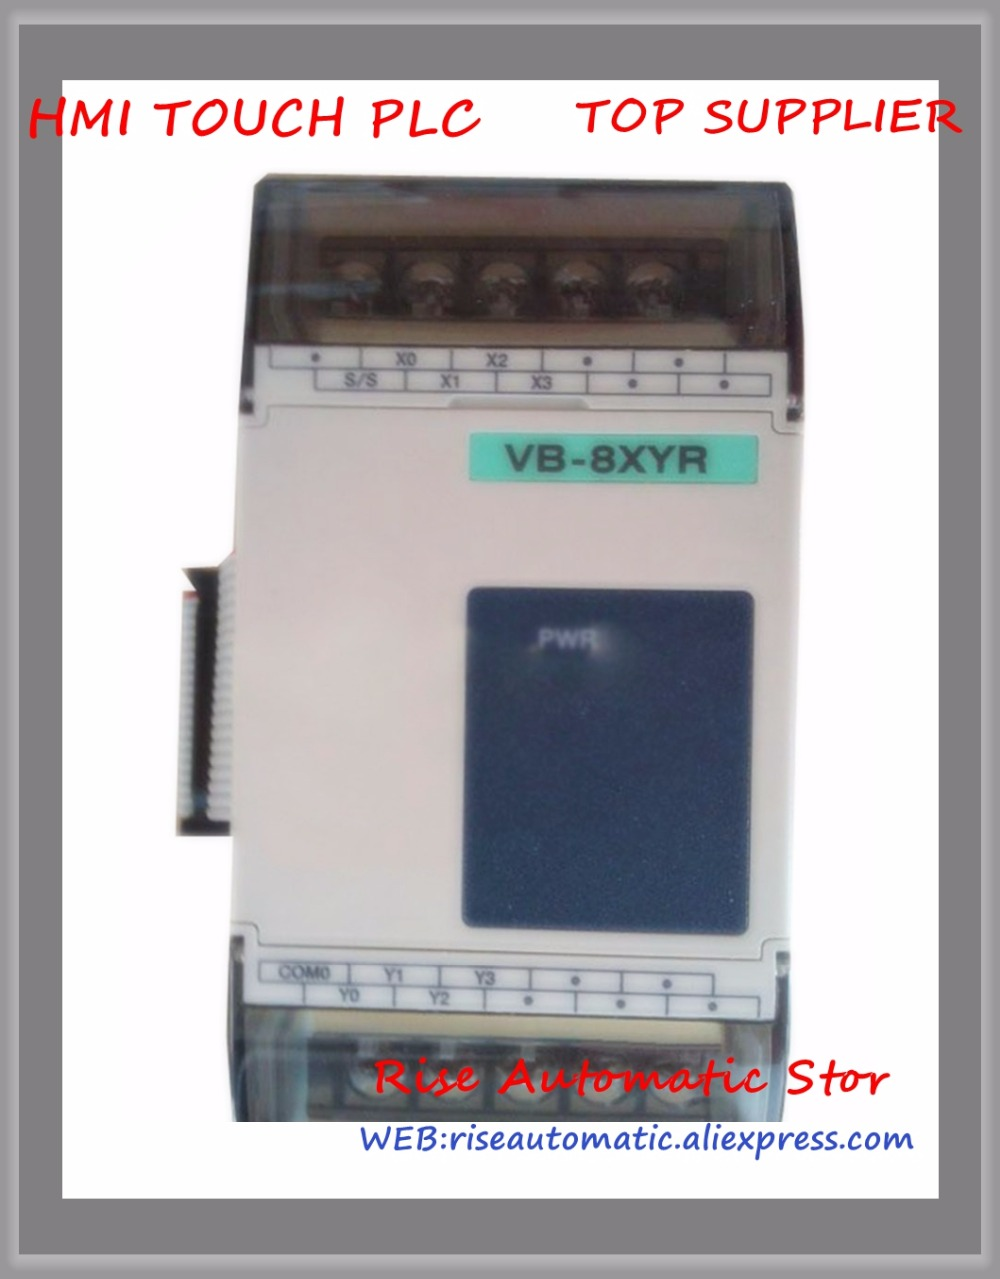 Brand New Original VB-8XYR PLC 24VDC 4 point DC24V input 4 point output Expansion Module saimi skdh145 12 145a 1200v brand new original three phase controlled rectifier bridge module